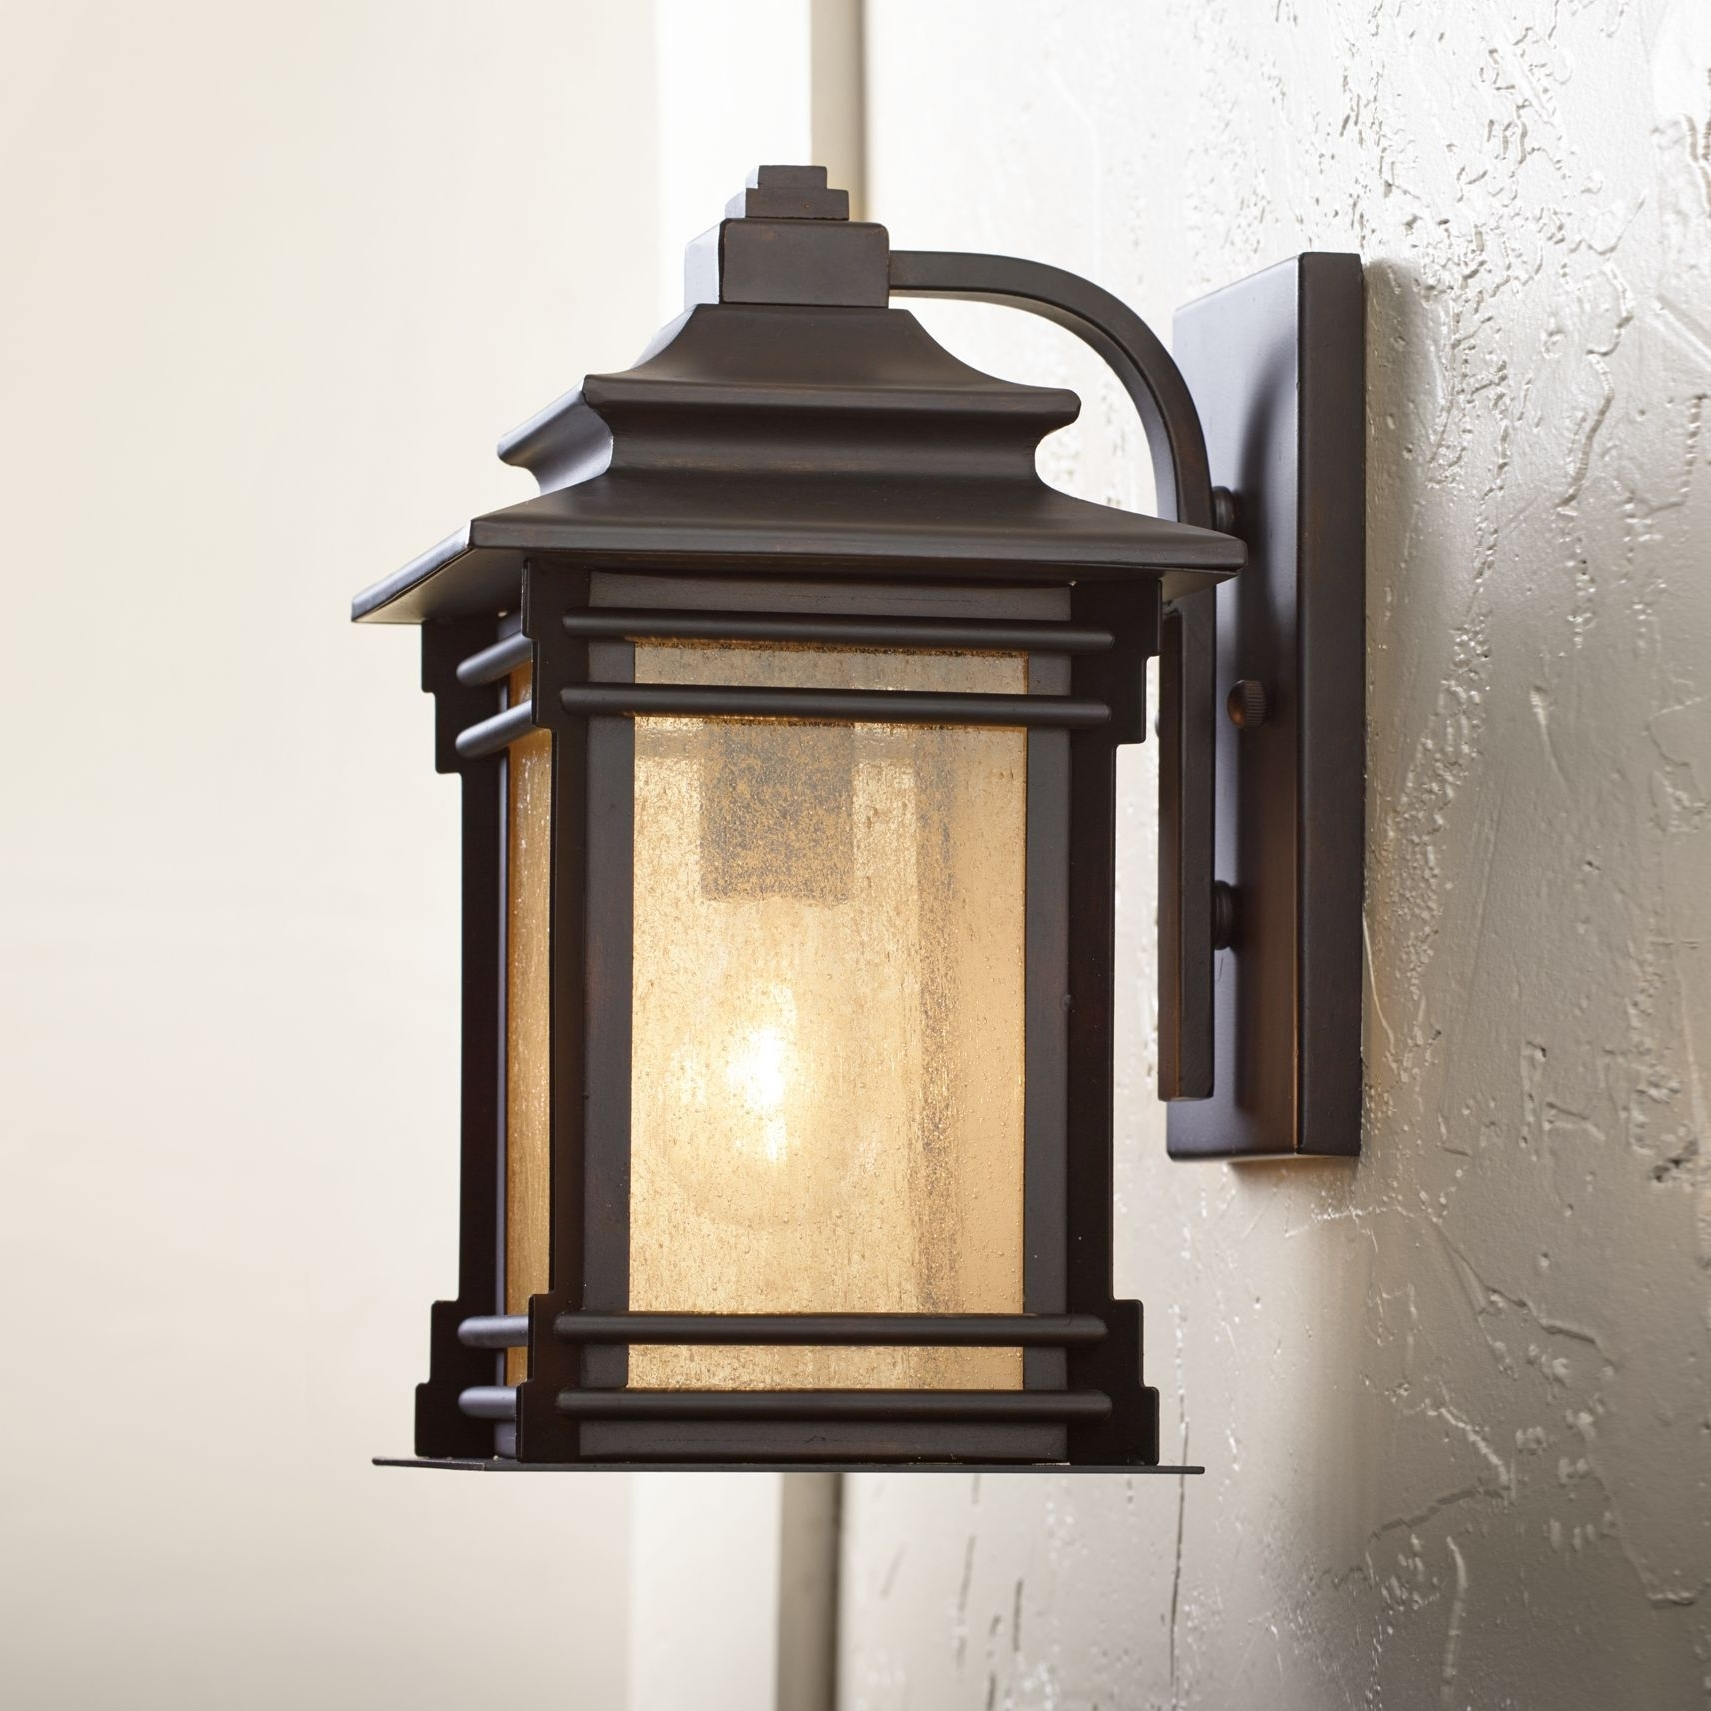 Most Recent Large Outdoor Lanterns Intended For Outdoor Lighting Amazing Carriage Lights Wall Extra Large Sconces (View 10 of 20)